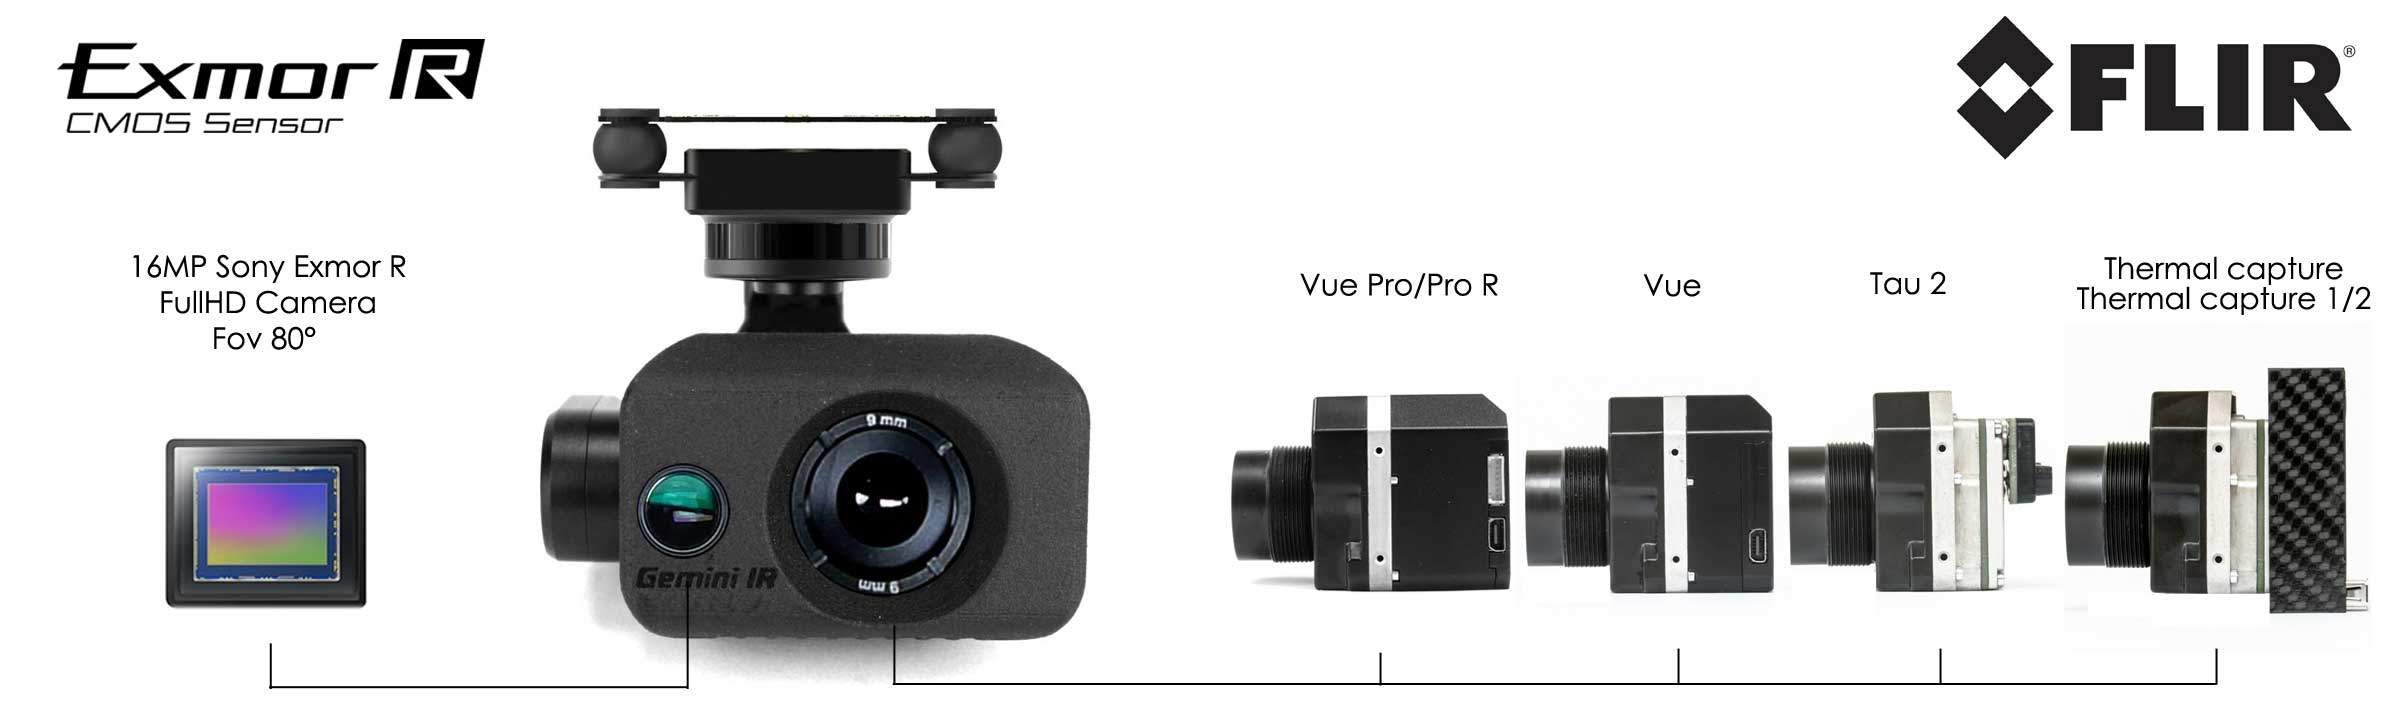 dual-sensor-thermal-gimbal-flir-gemini-ir-pro-hd-16mp